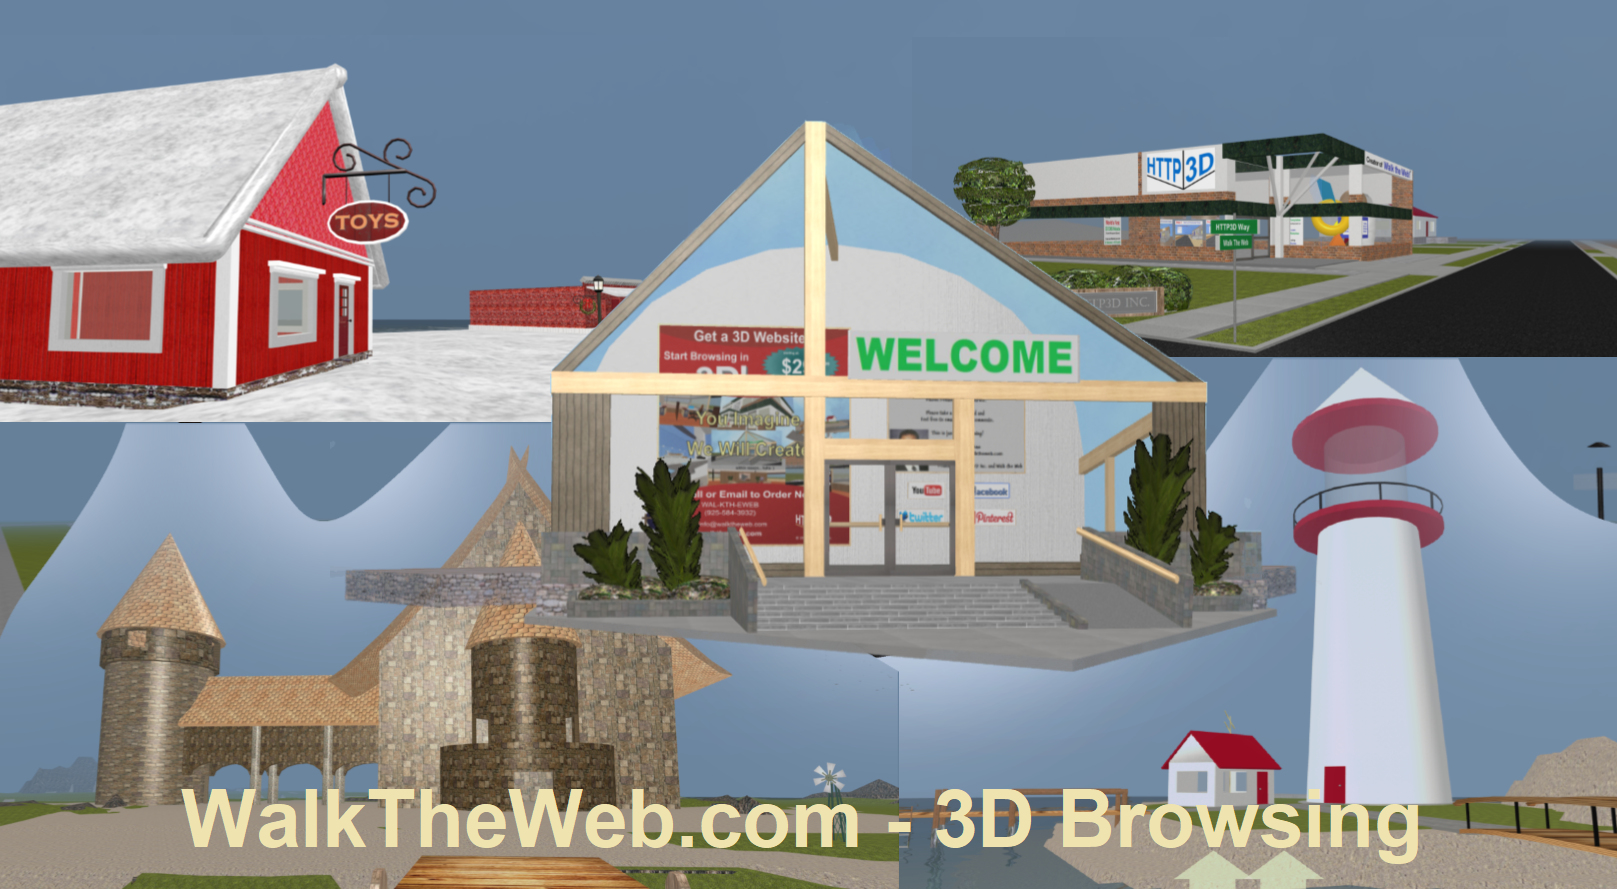 WalkTheWeb.com- 3D Browsing